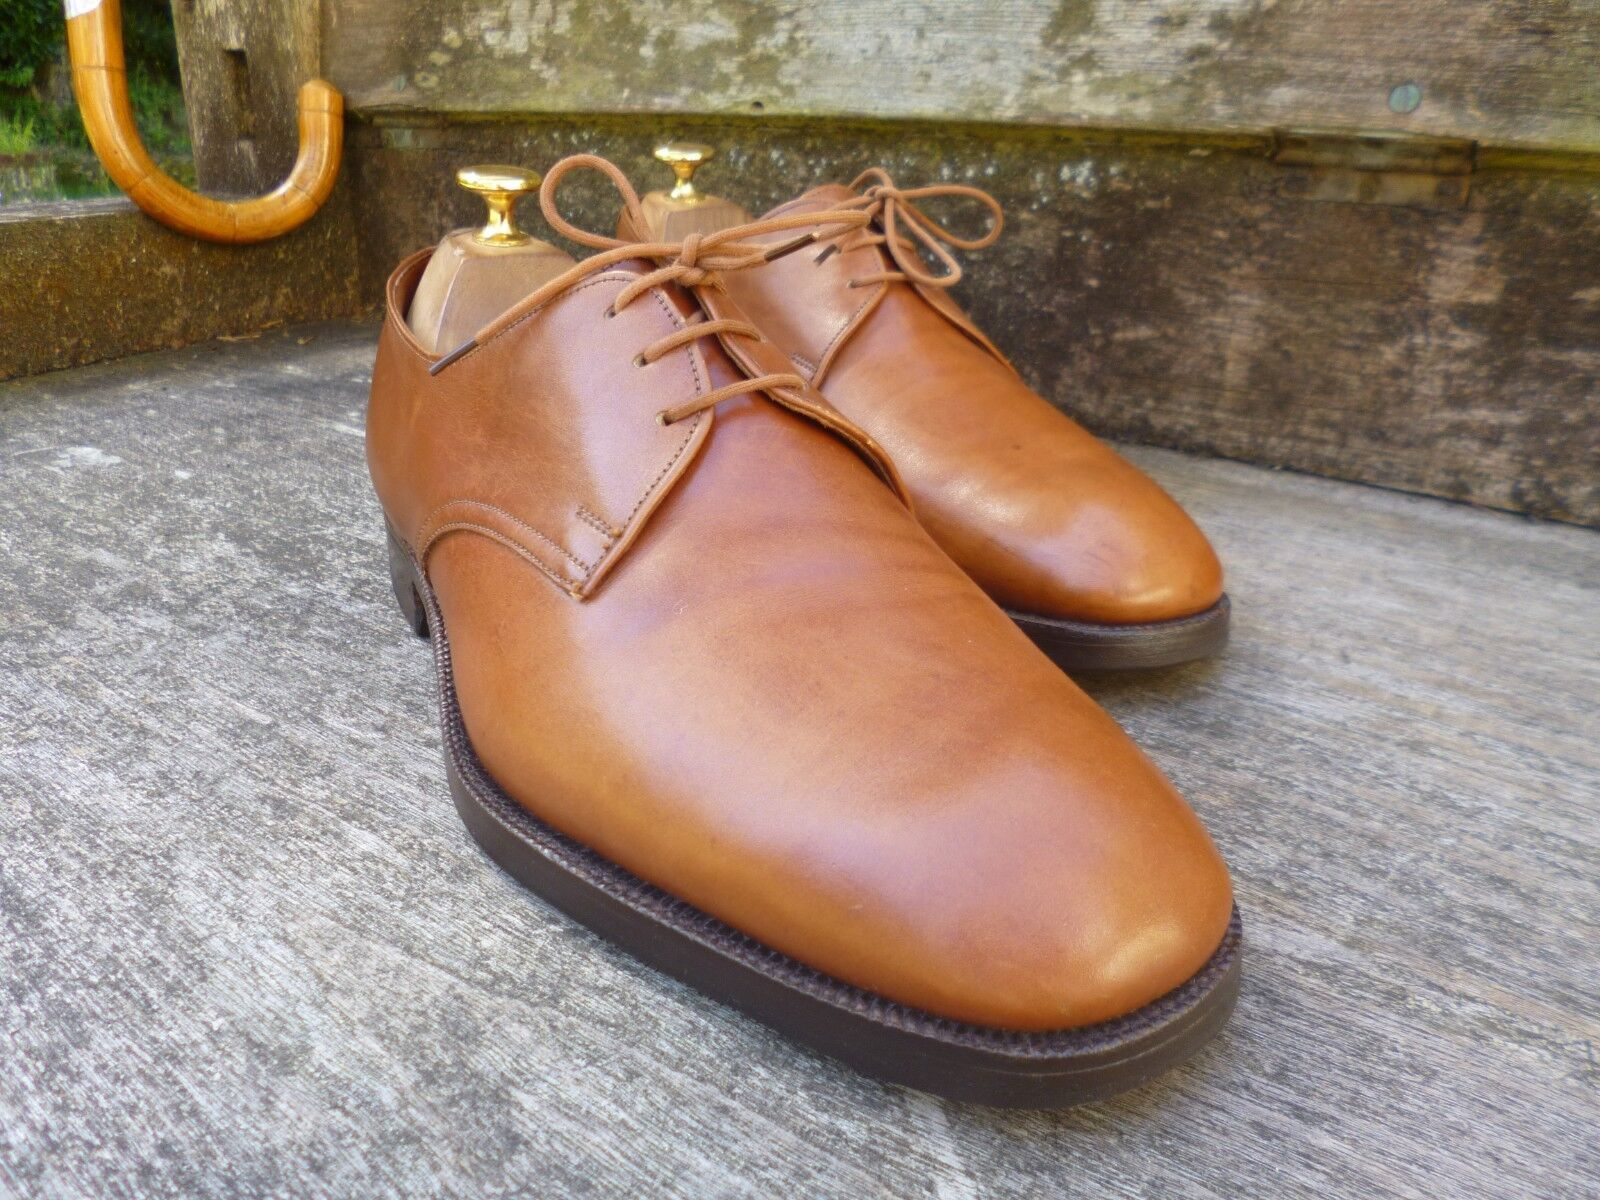 CHURCH VINTAGE DERBY – BROWN / TAN – UK 8 – BRUTON - EXCELLENT CONDITION